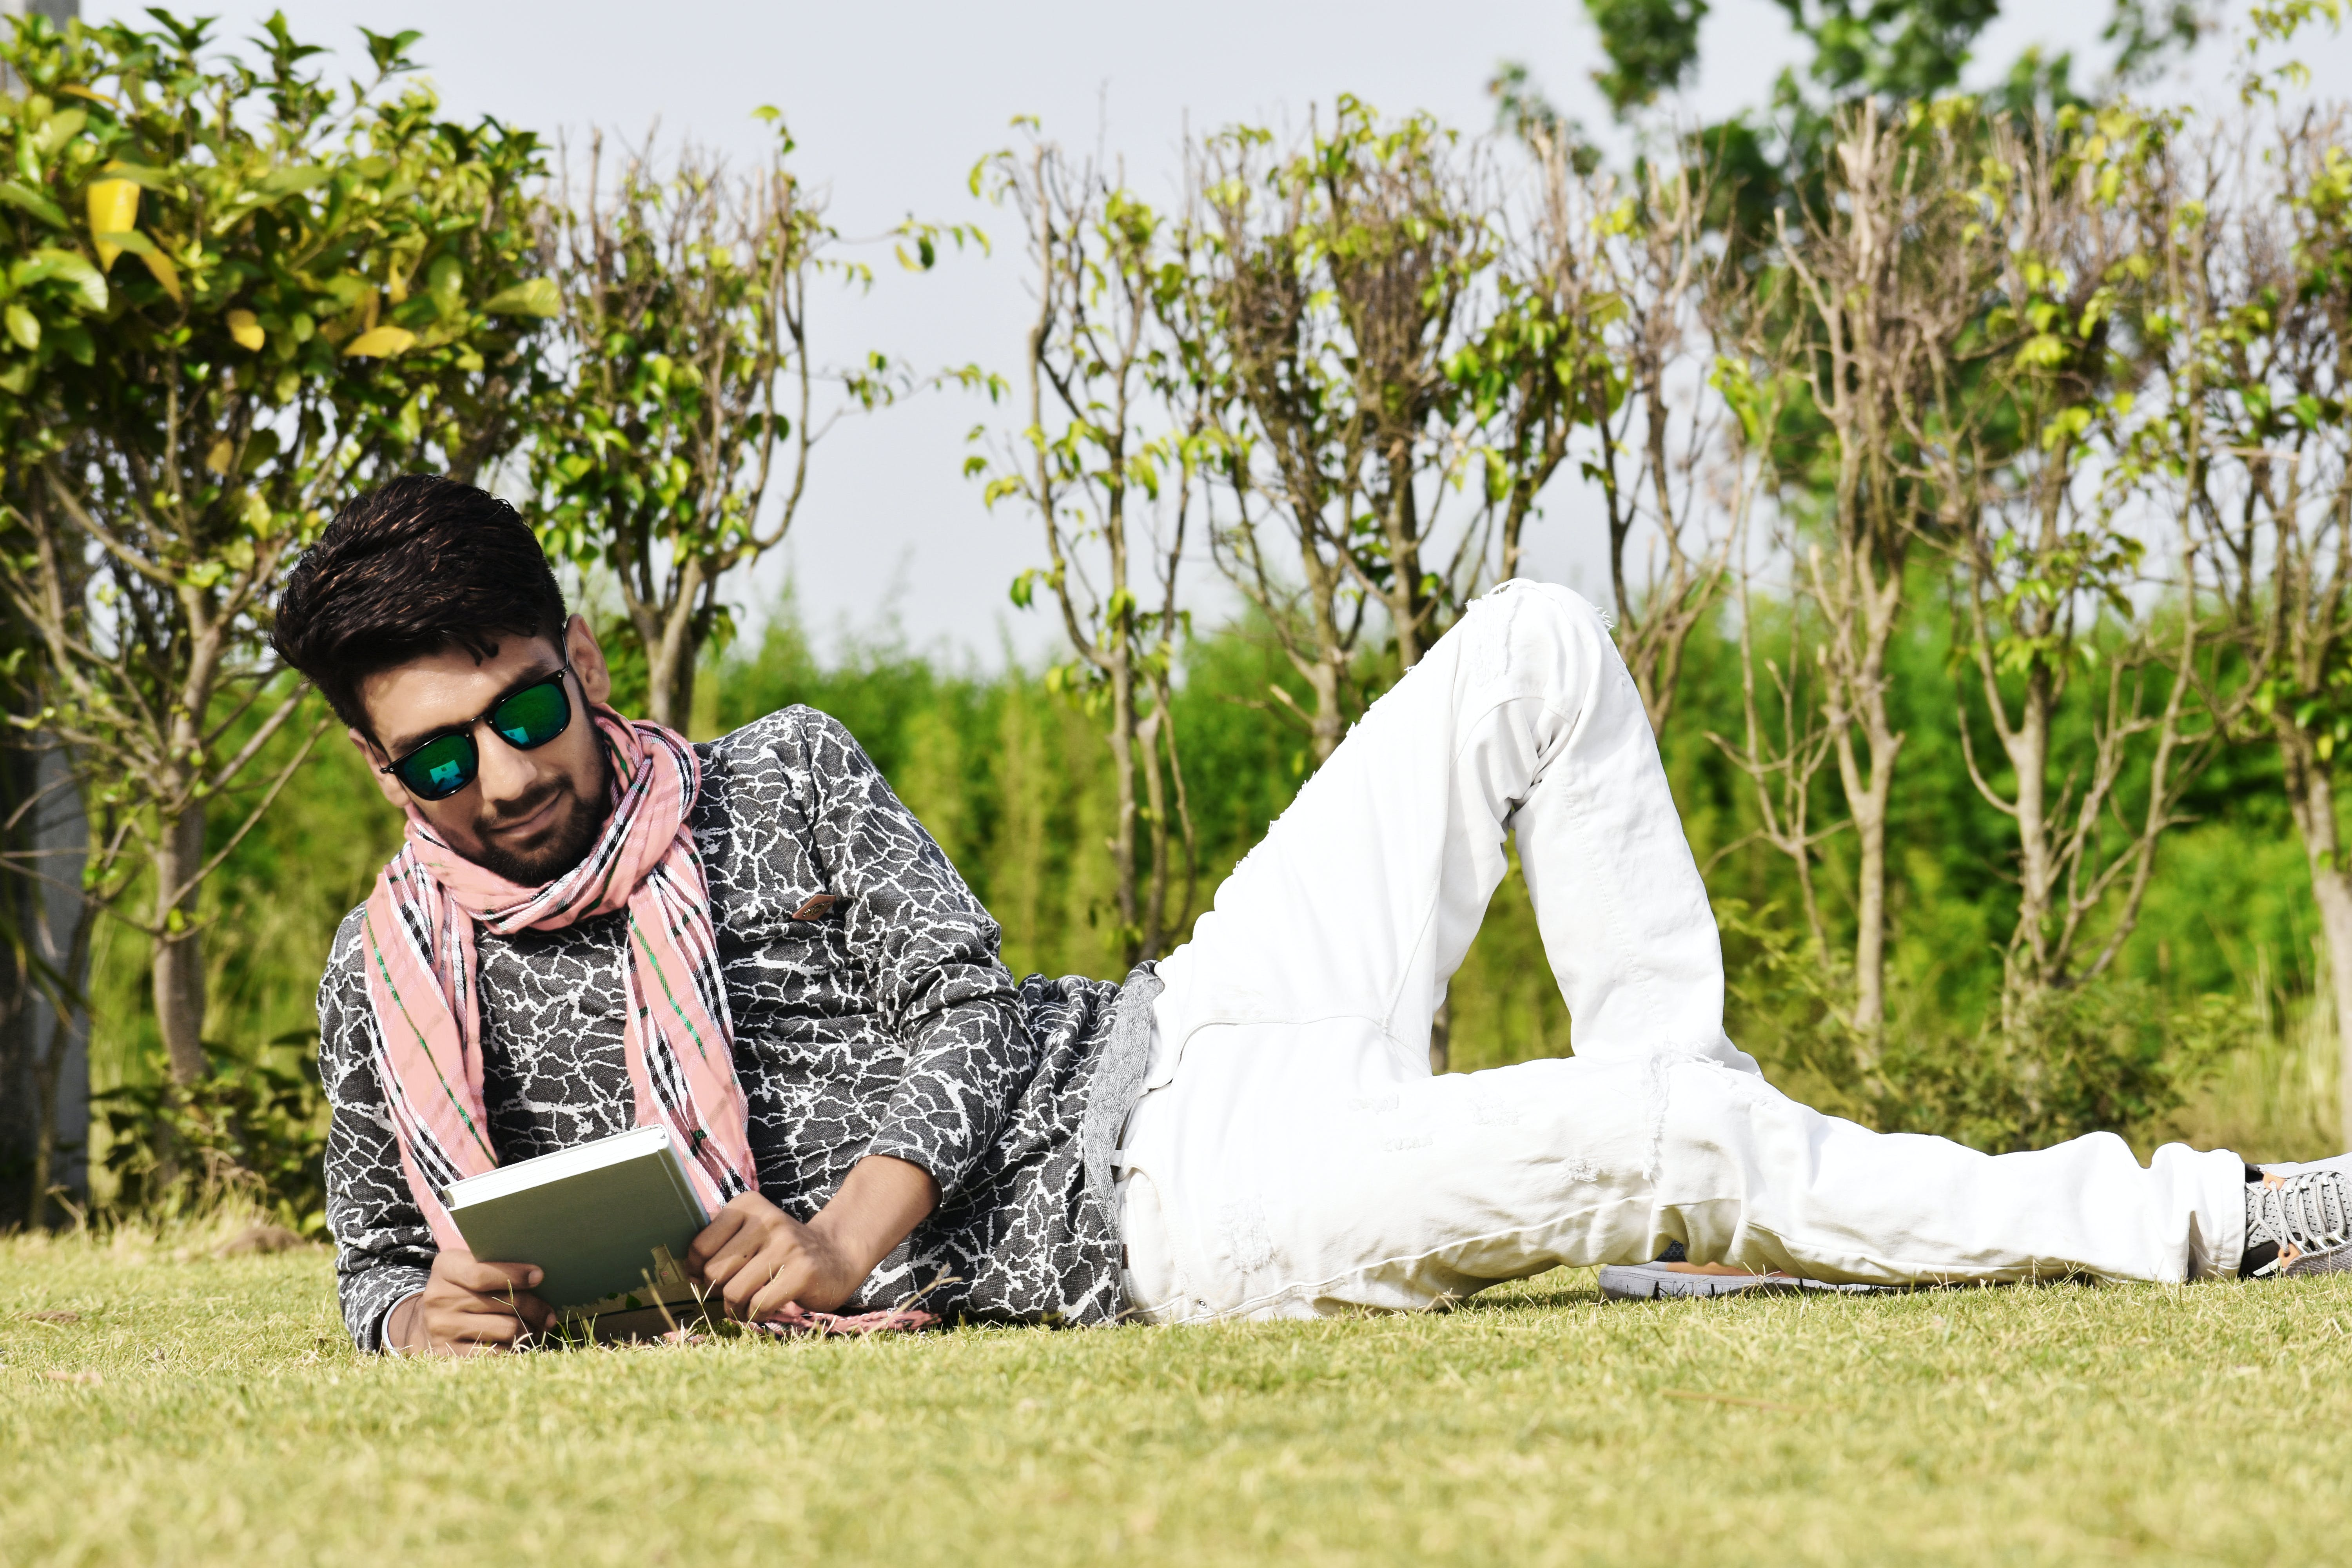 Man in White Pants Wearing Sunglasses Reading Book